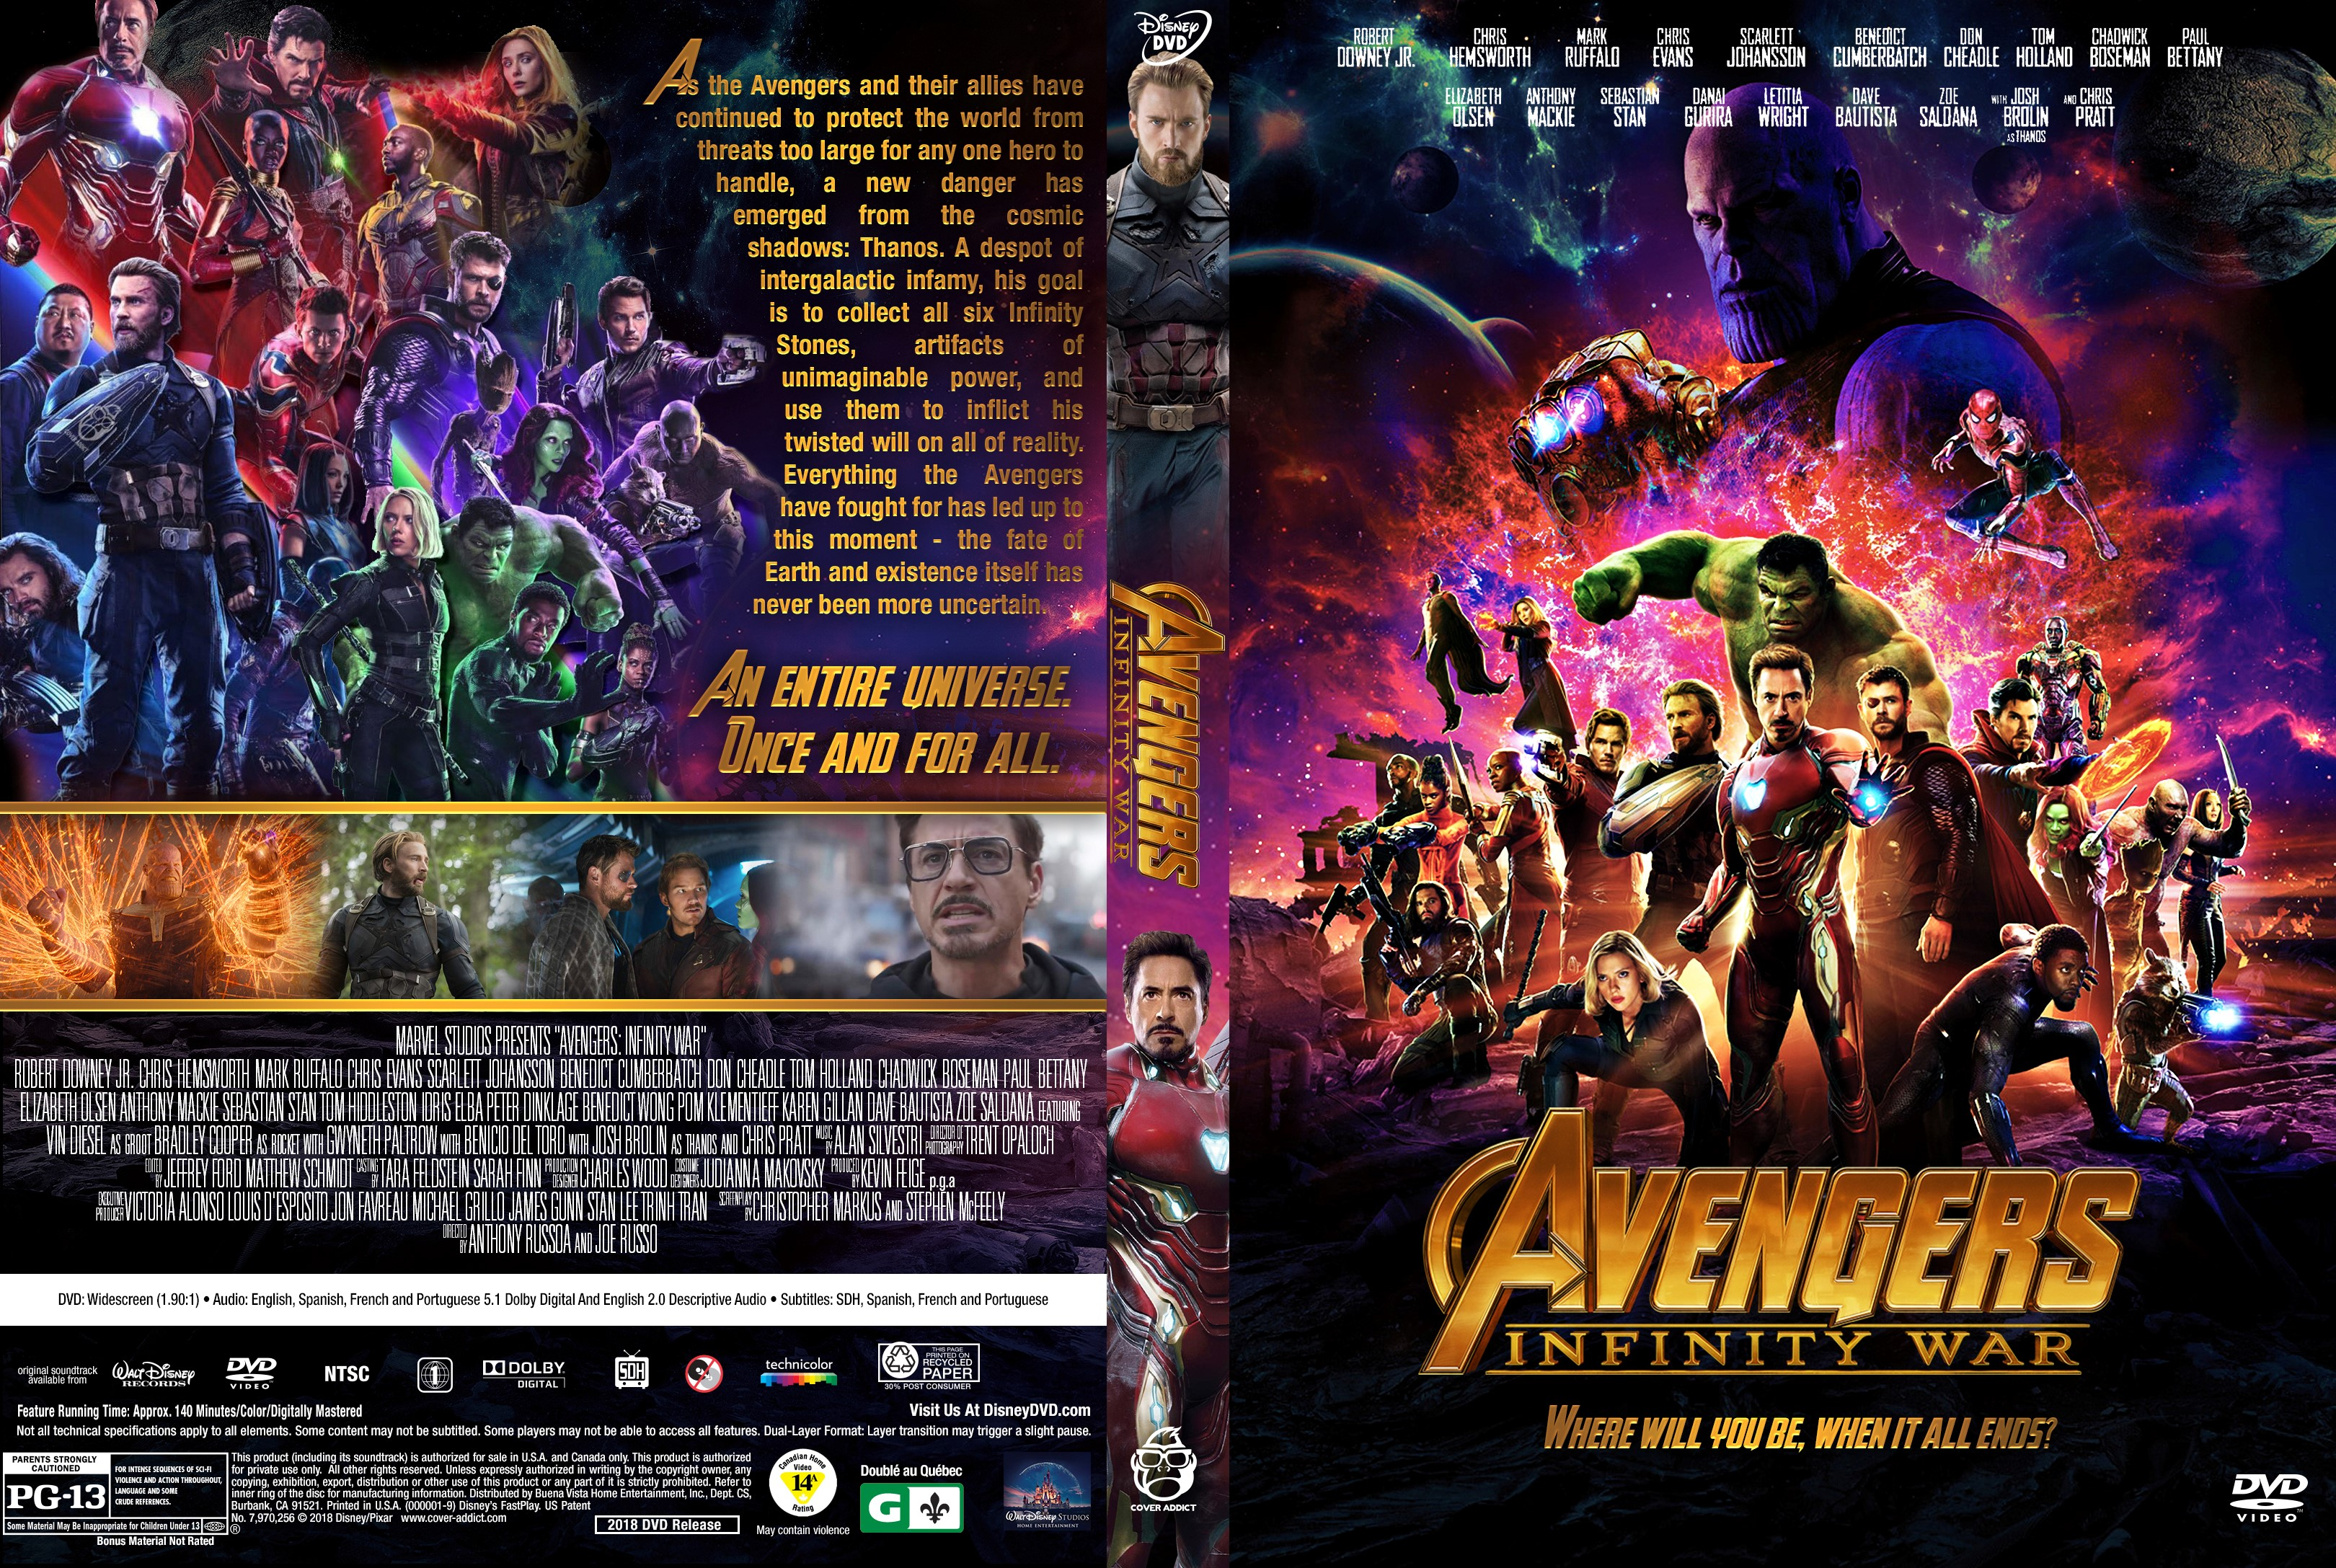 Avengers Infinity War Imdb >> Avengers: Infinity War DVD Cover - Cover Addict - DVD and Bluray Covers